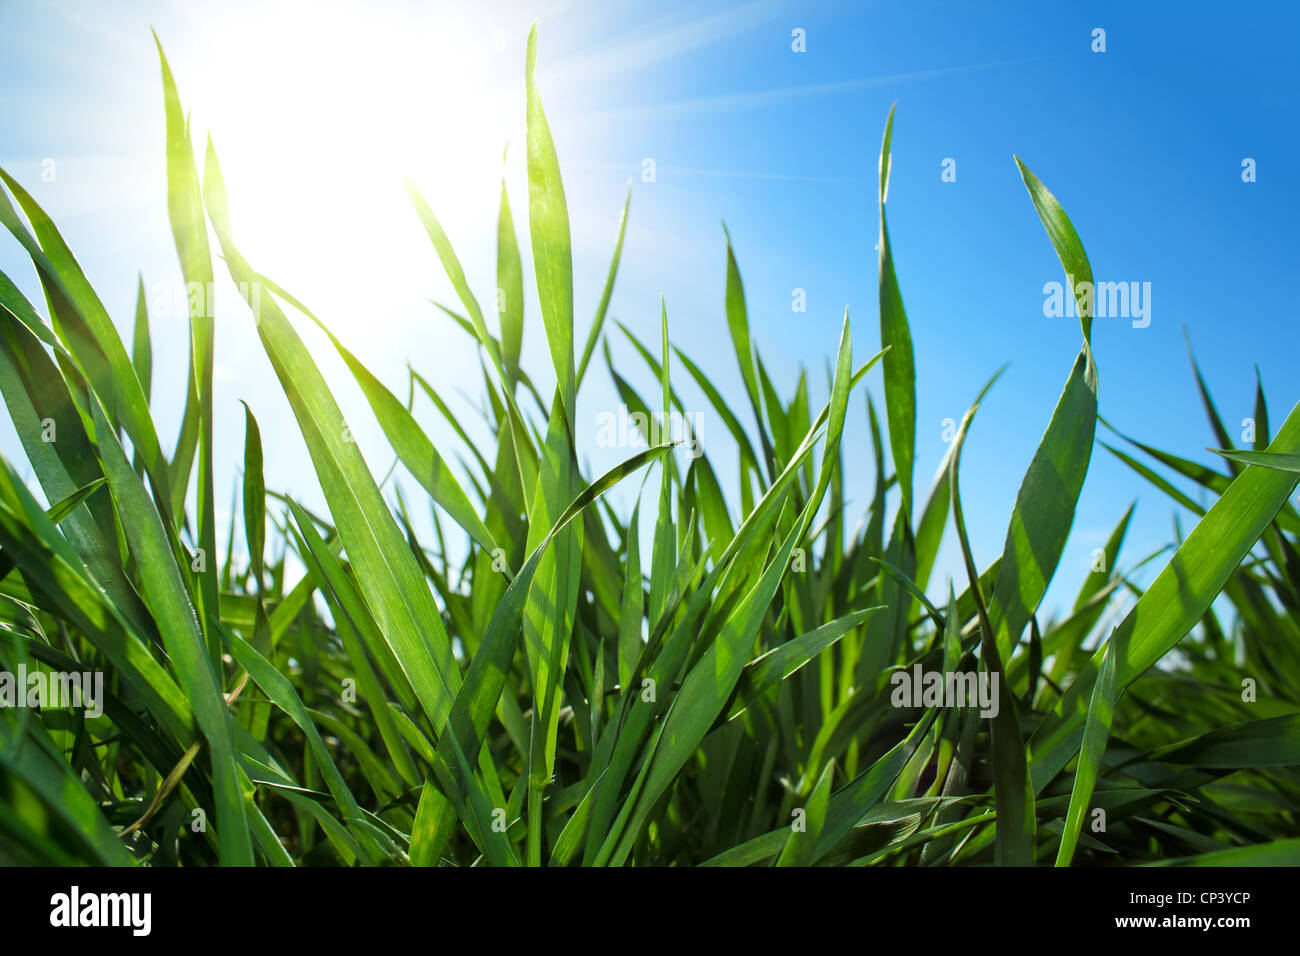 Closeup of green grass and blue sky with sun - Stock Image